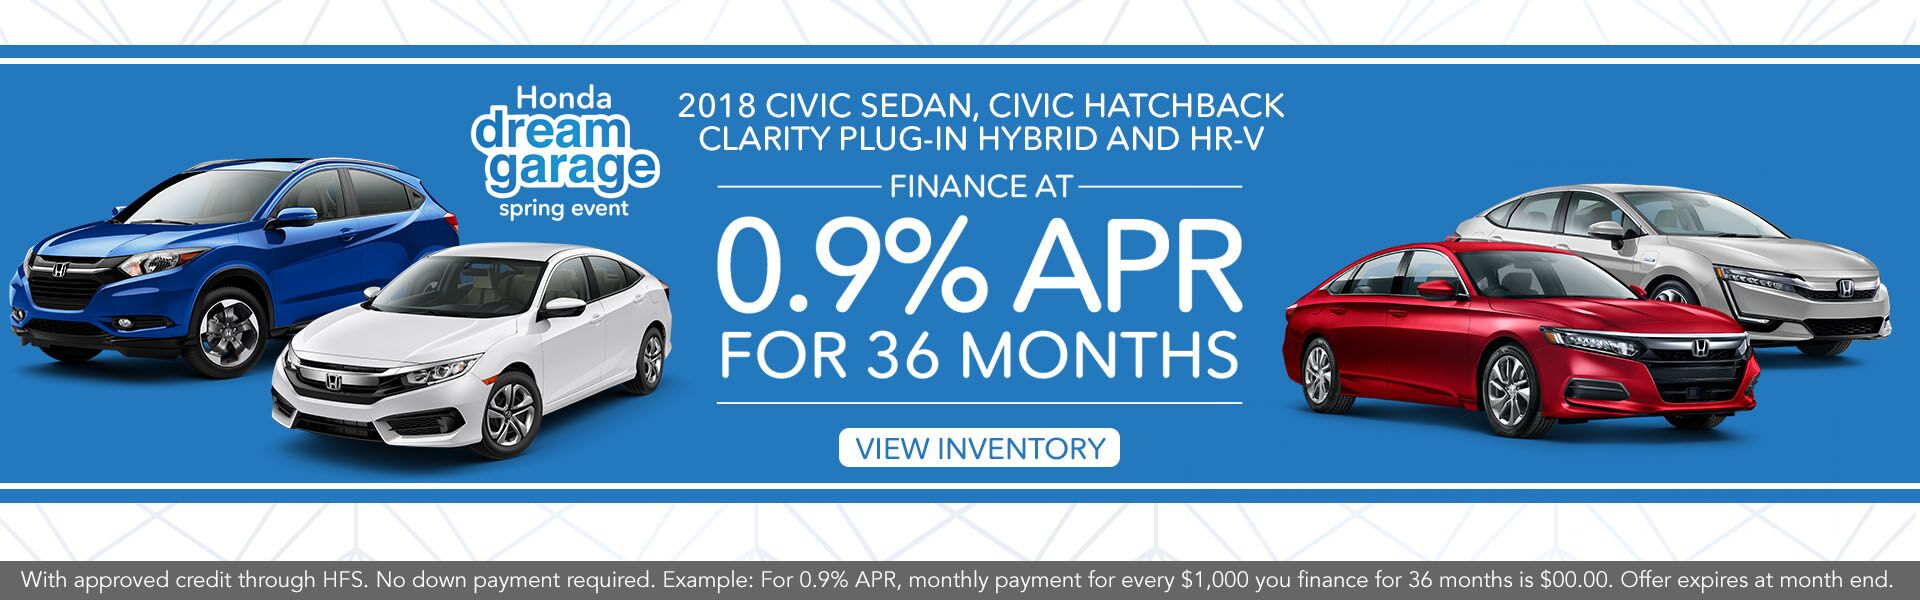 APR HR-V, Civic SDN, Civic Hatchback, Clarity Hybrid